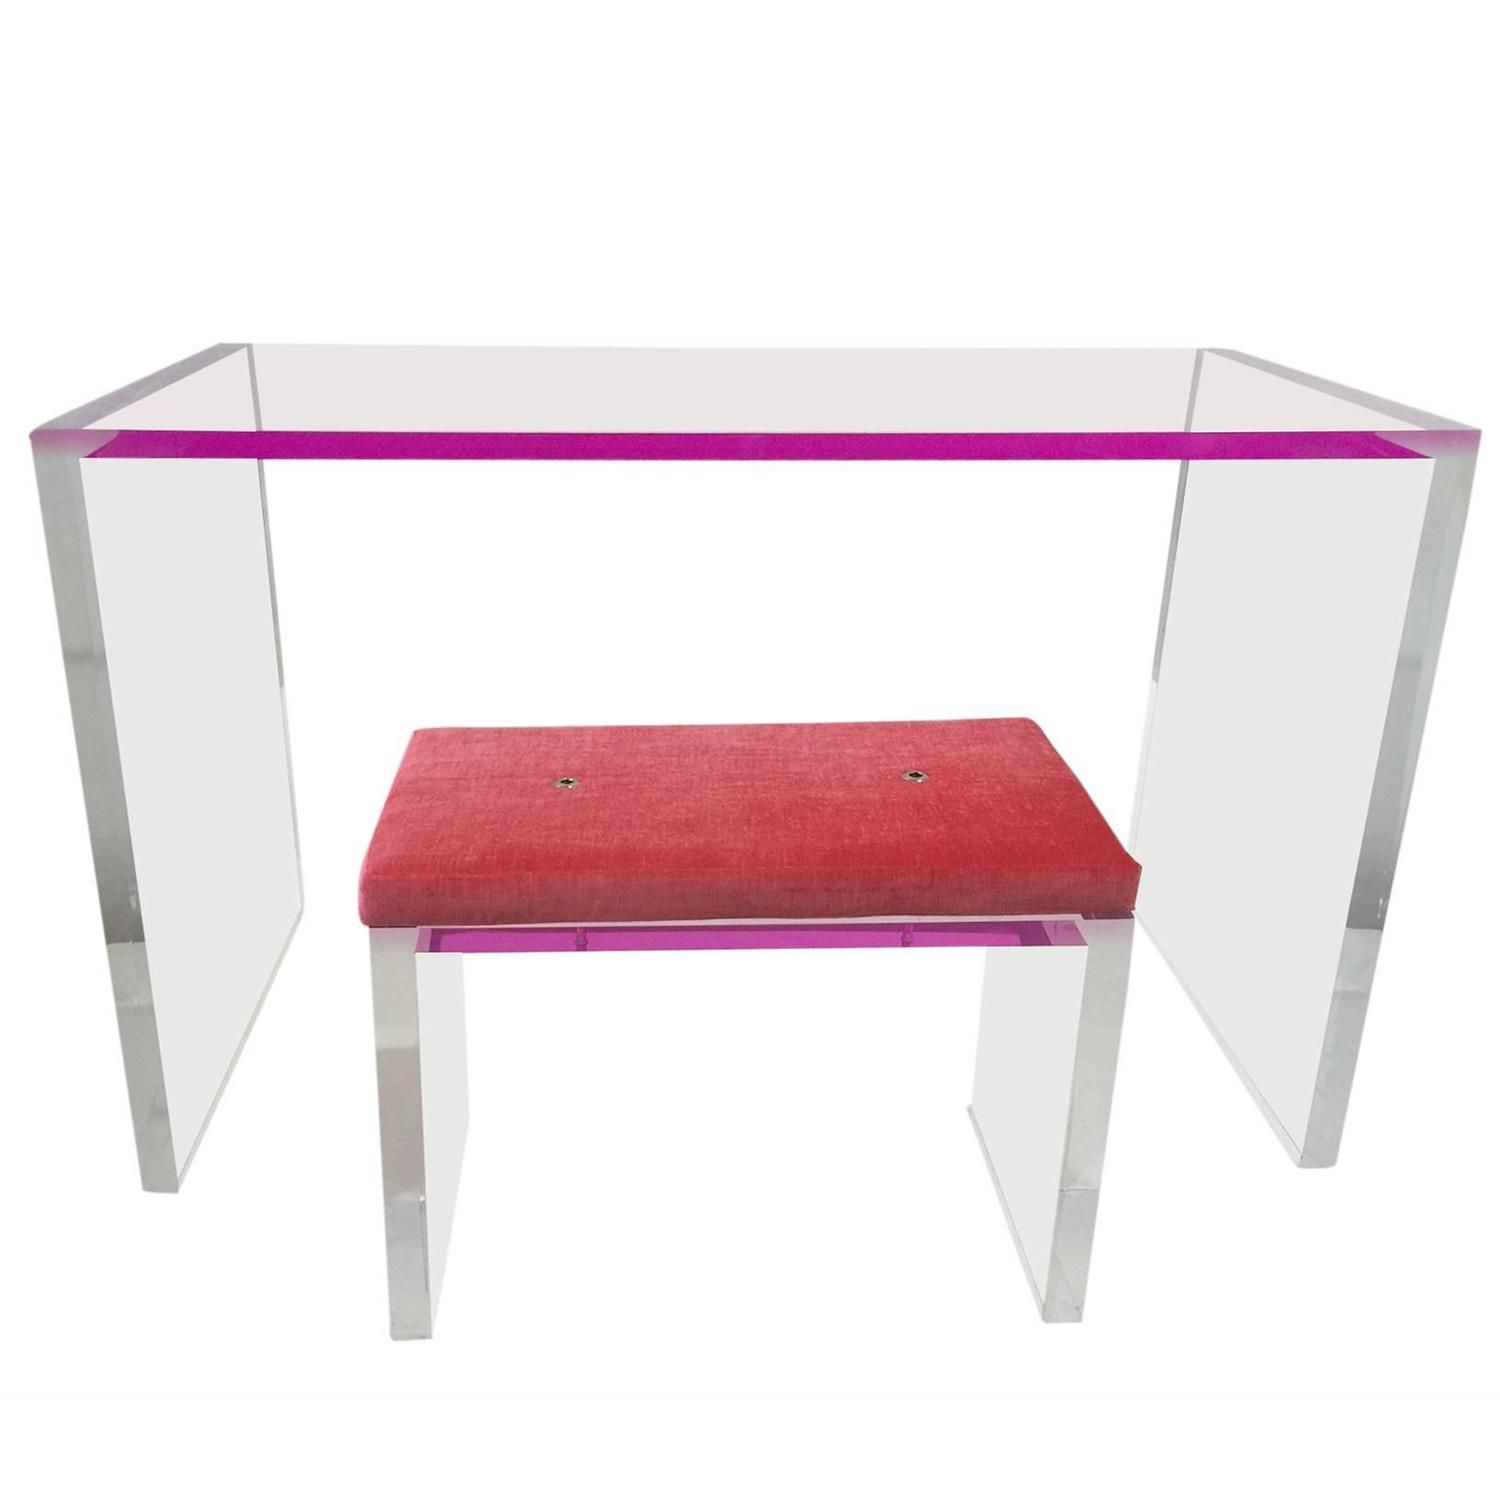 Whimsical Pink And Clear Acrylic Desk And Bench From A Unique